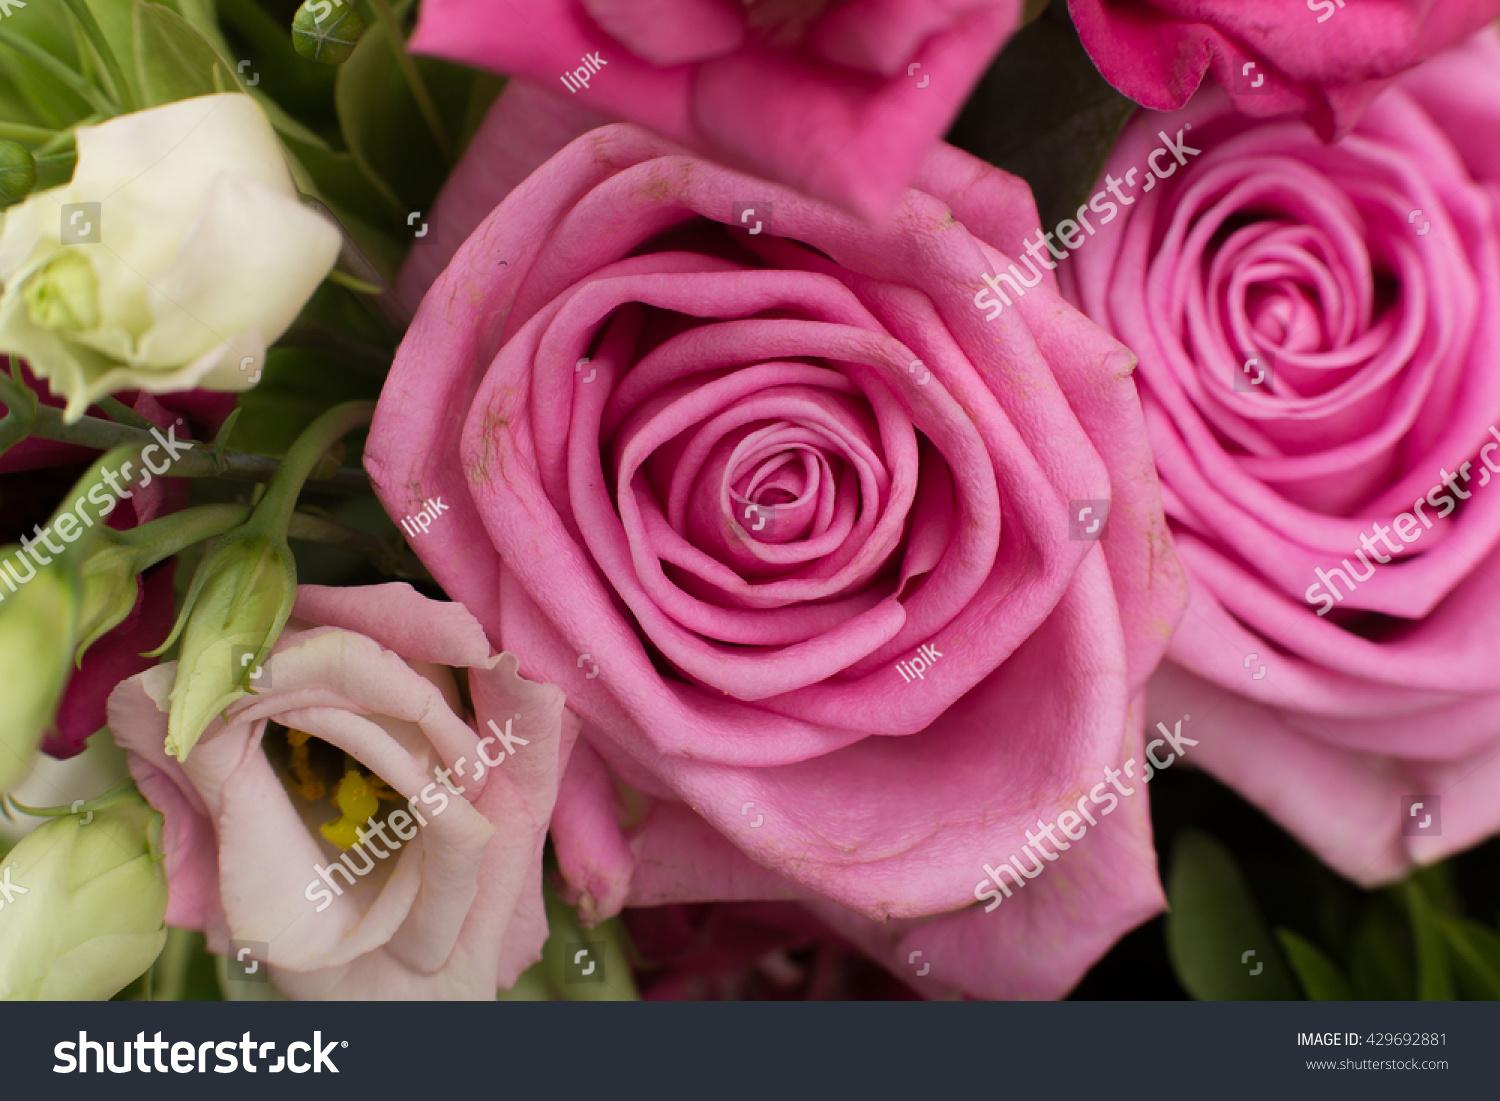 Beautiful Rose Artificial Real Flowers Image Stock Photo Edit Now